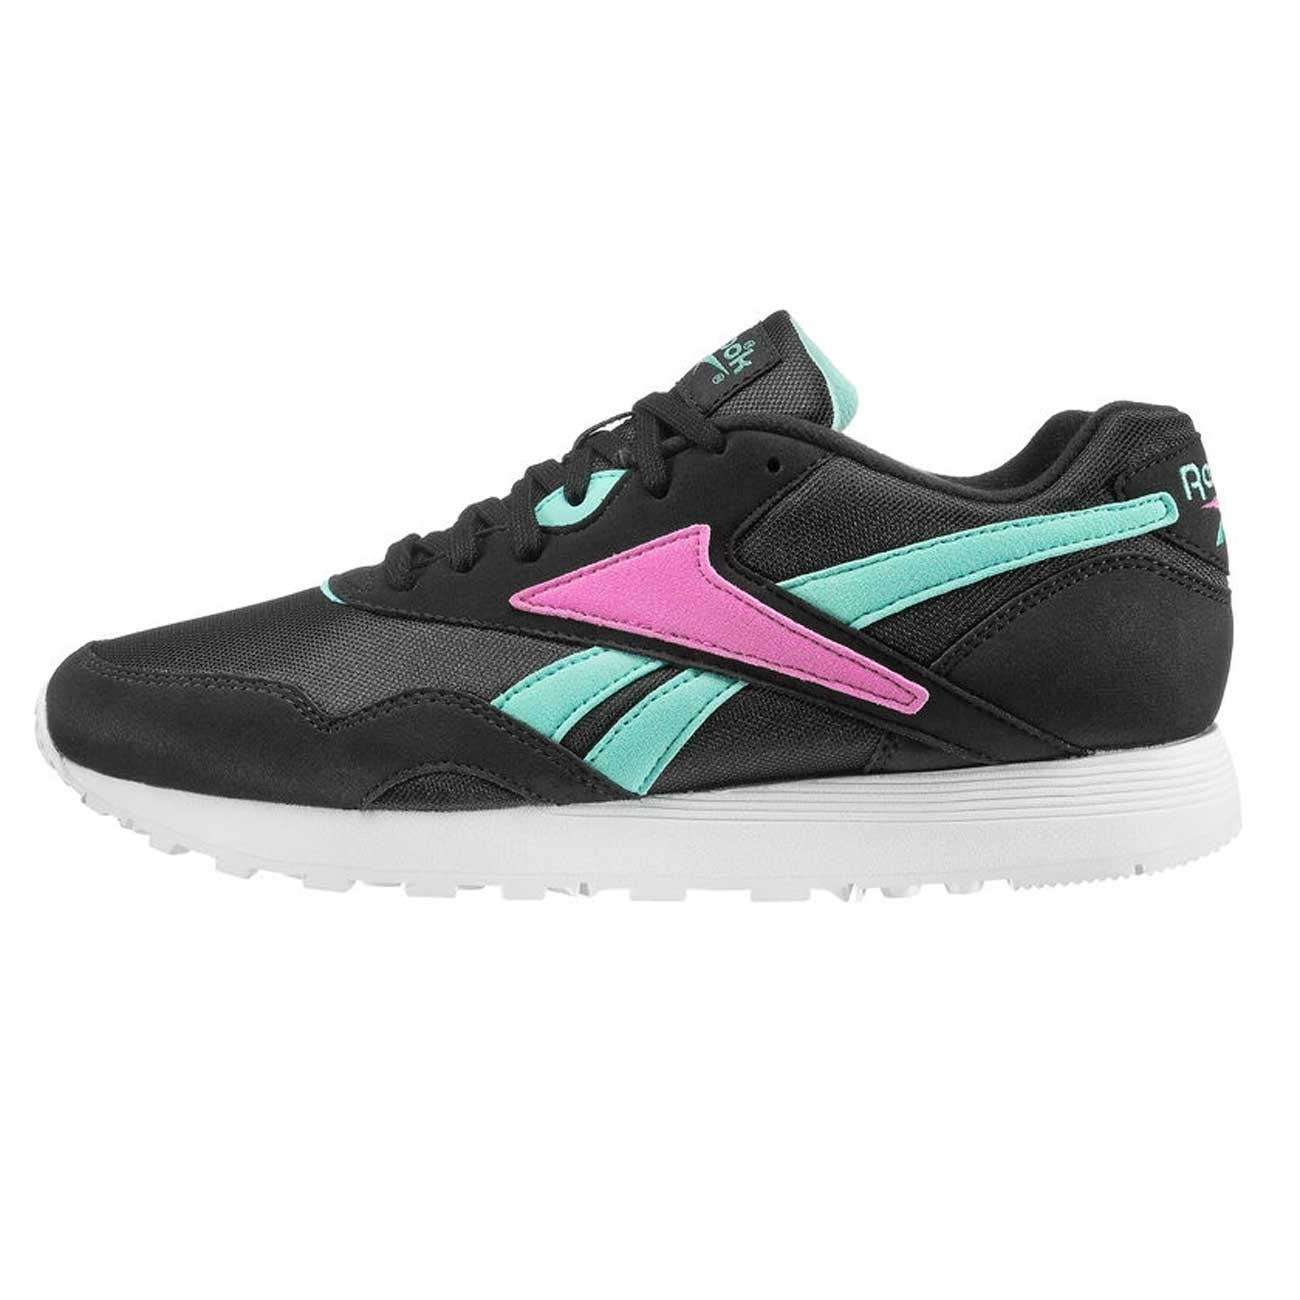 a4e51cfcd75a92 Reebok Shoes - Rapide Og Su Black Turquoise Pink  Amazon.co.uk  Shoes   Bags